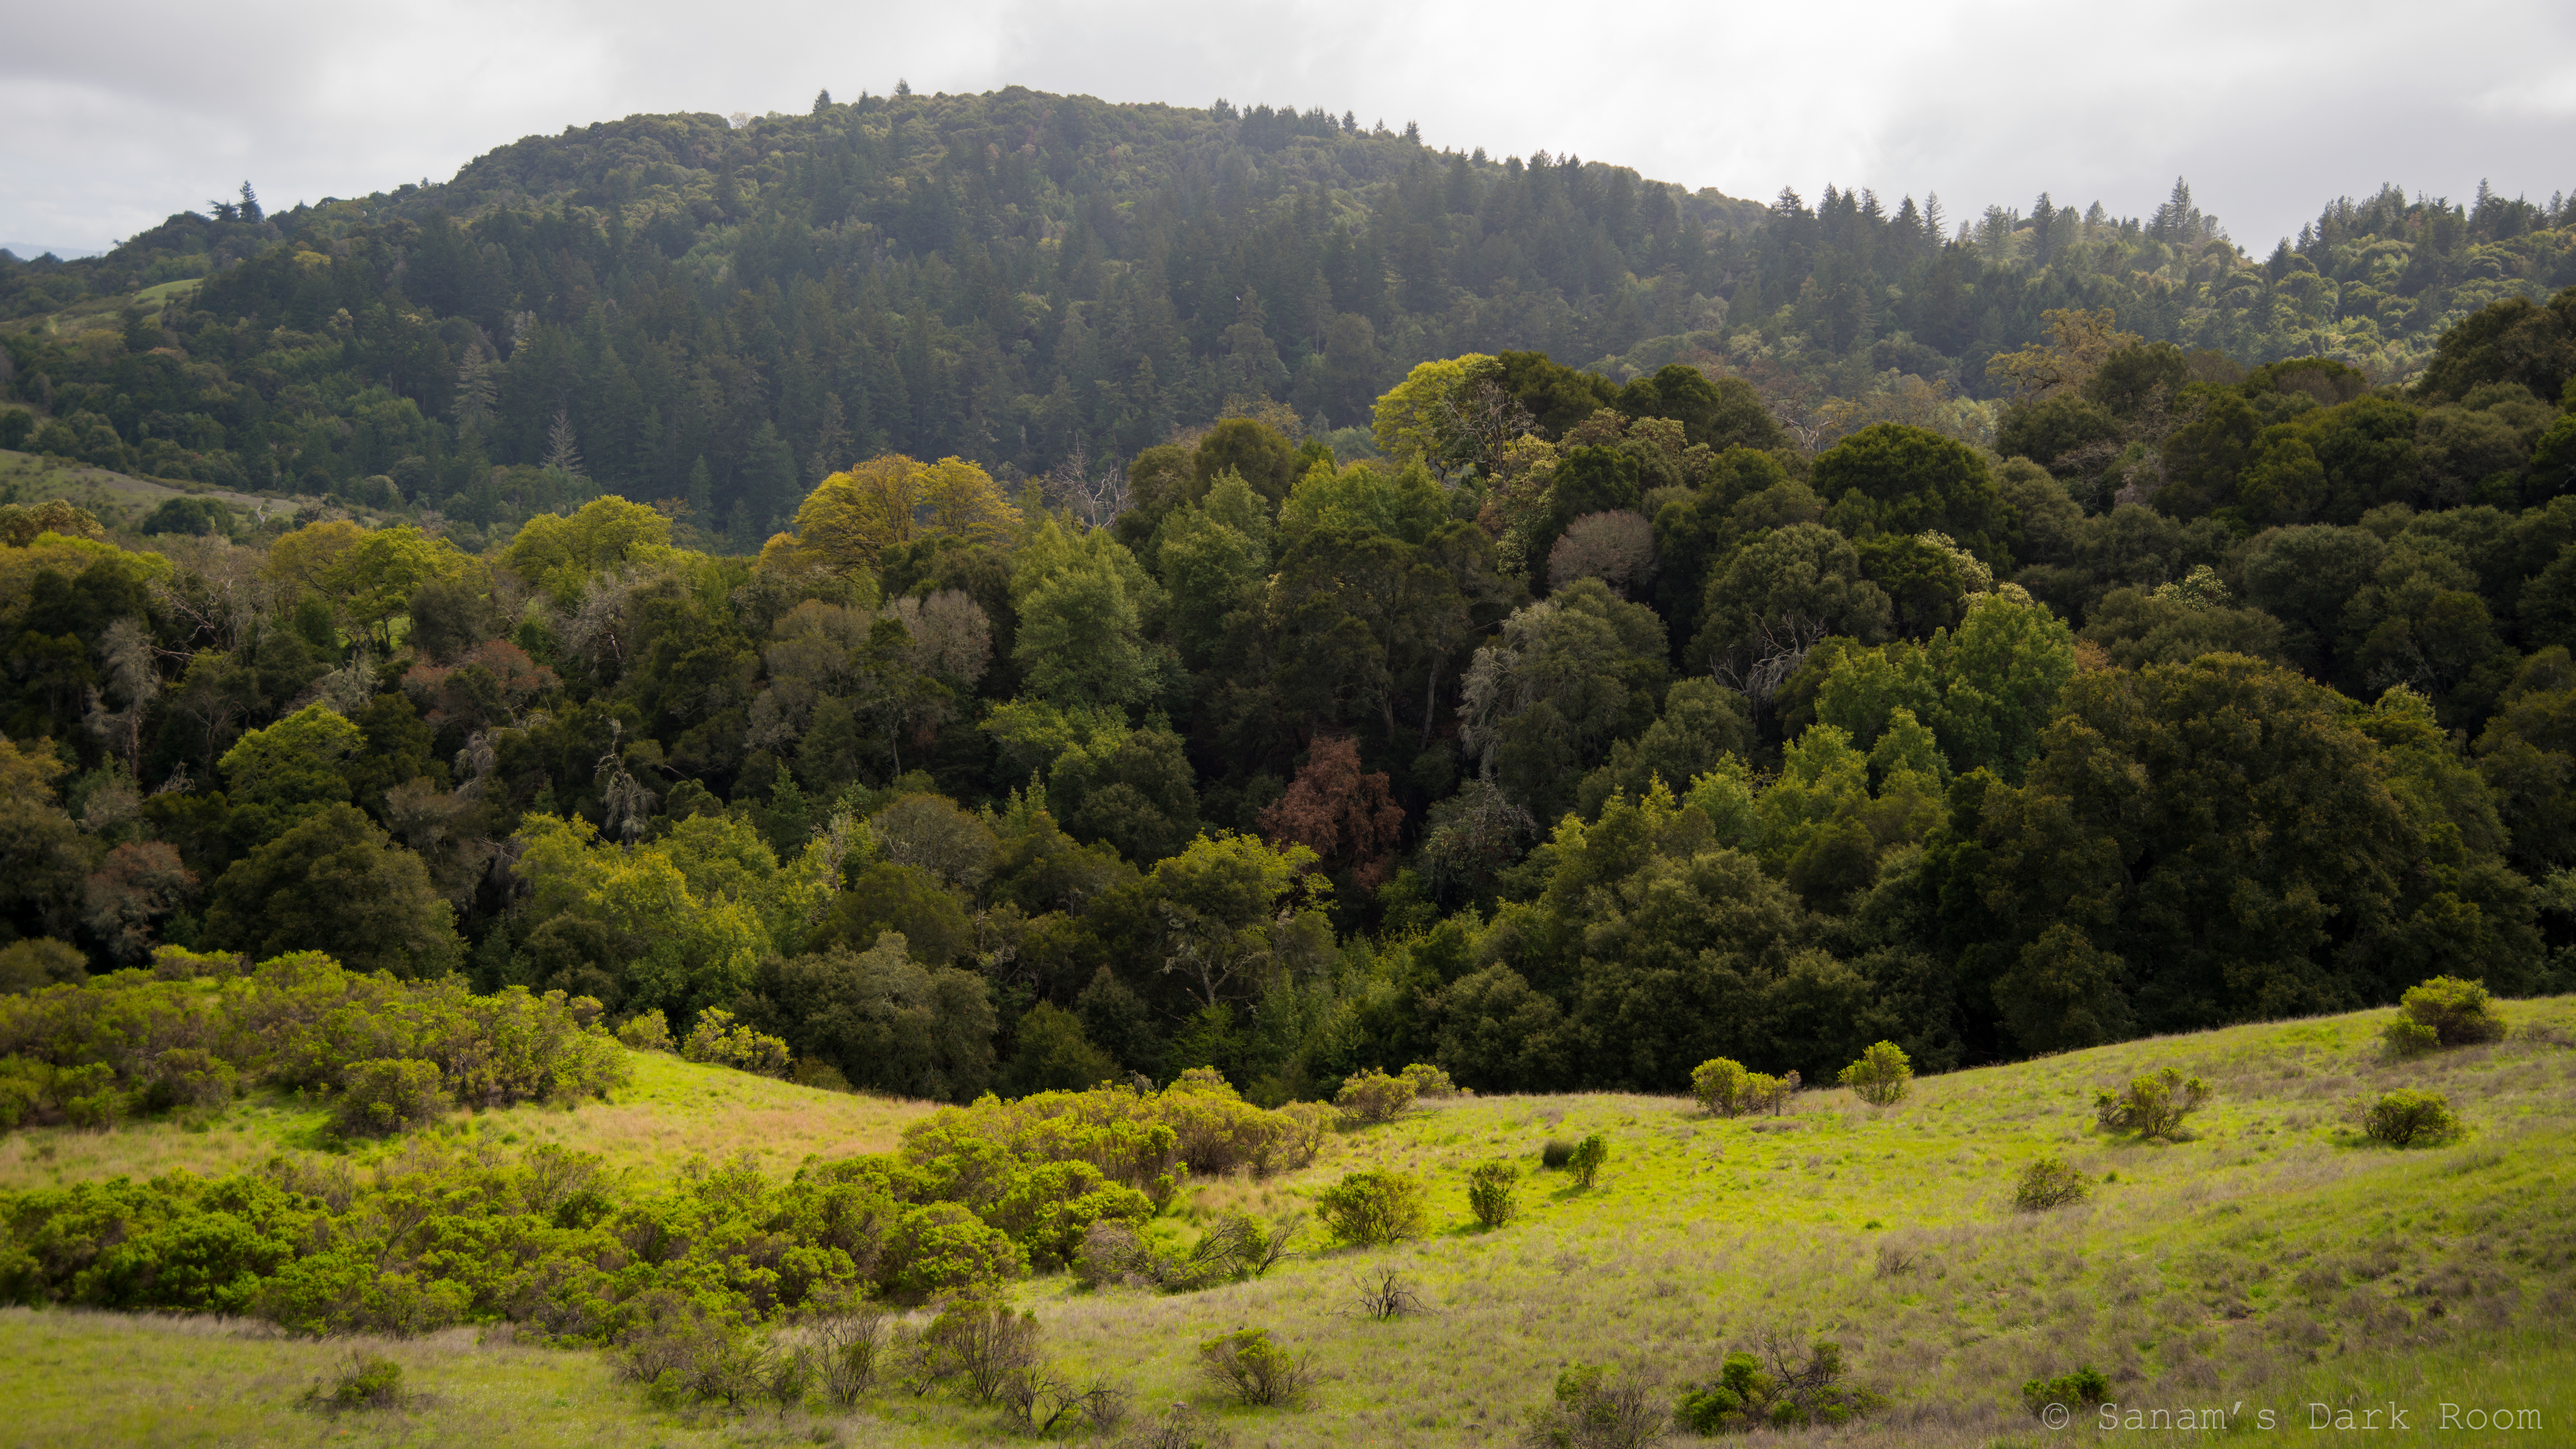 Monte Bello, Los Altos Hills